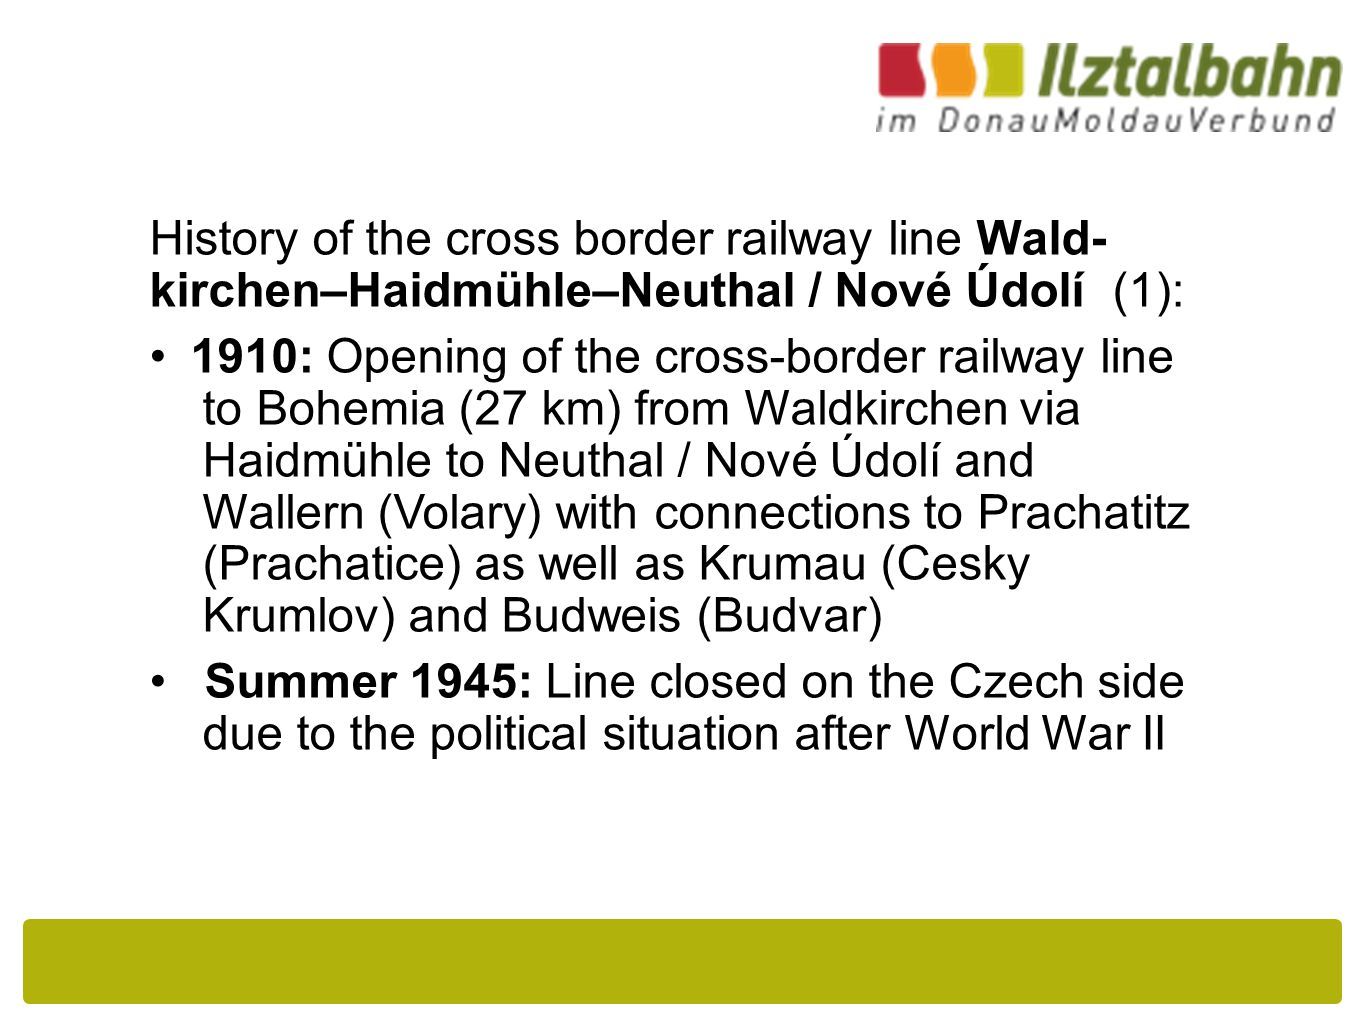 History of the cross border railway line Wald- kirchen–Haidmühle–Neuthal / Nové Údolí (1): 1910: Opening of the cross-border railway line to Bohemia (27 km) from Waldkirchen via Haidmühle to Neuthal / Nové Údolí and Wallern (Volary) with connections to Prachatitz (Prachatice) as well as Krumau (Cesky Krumlov) and Budweis (Budvar) Summer 1945: Line closed on the Czech side due to the political situation after World War II